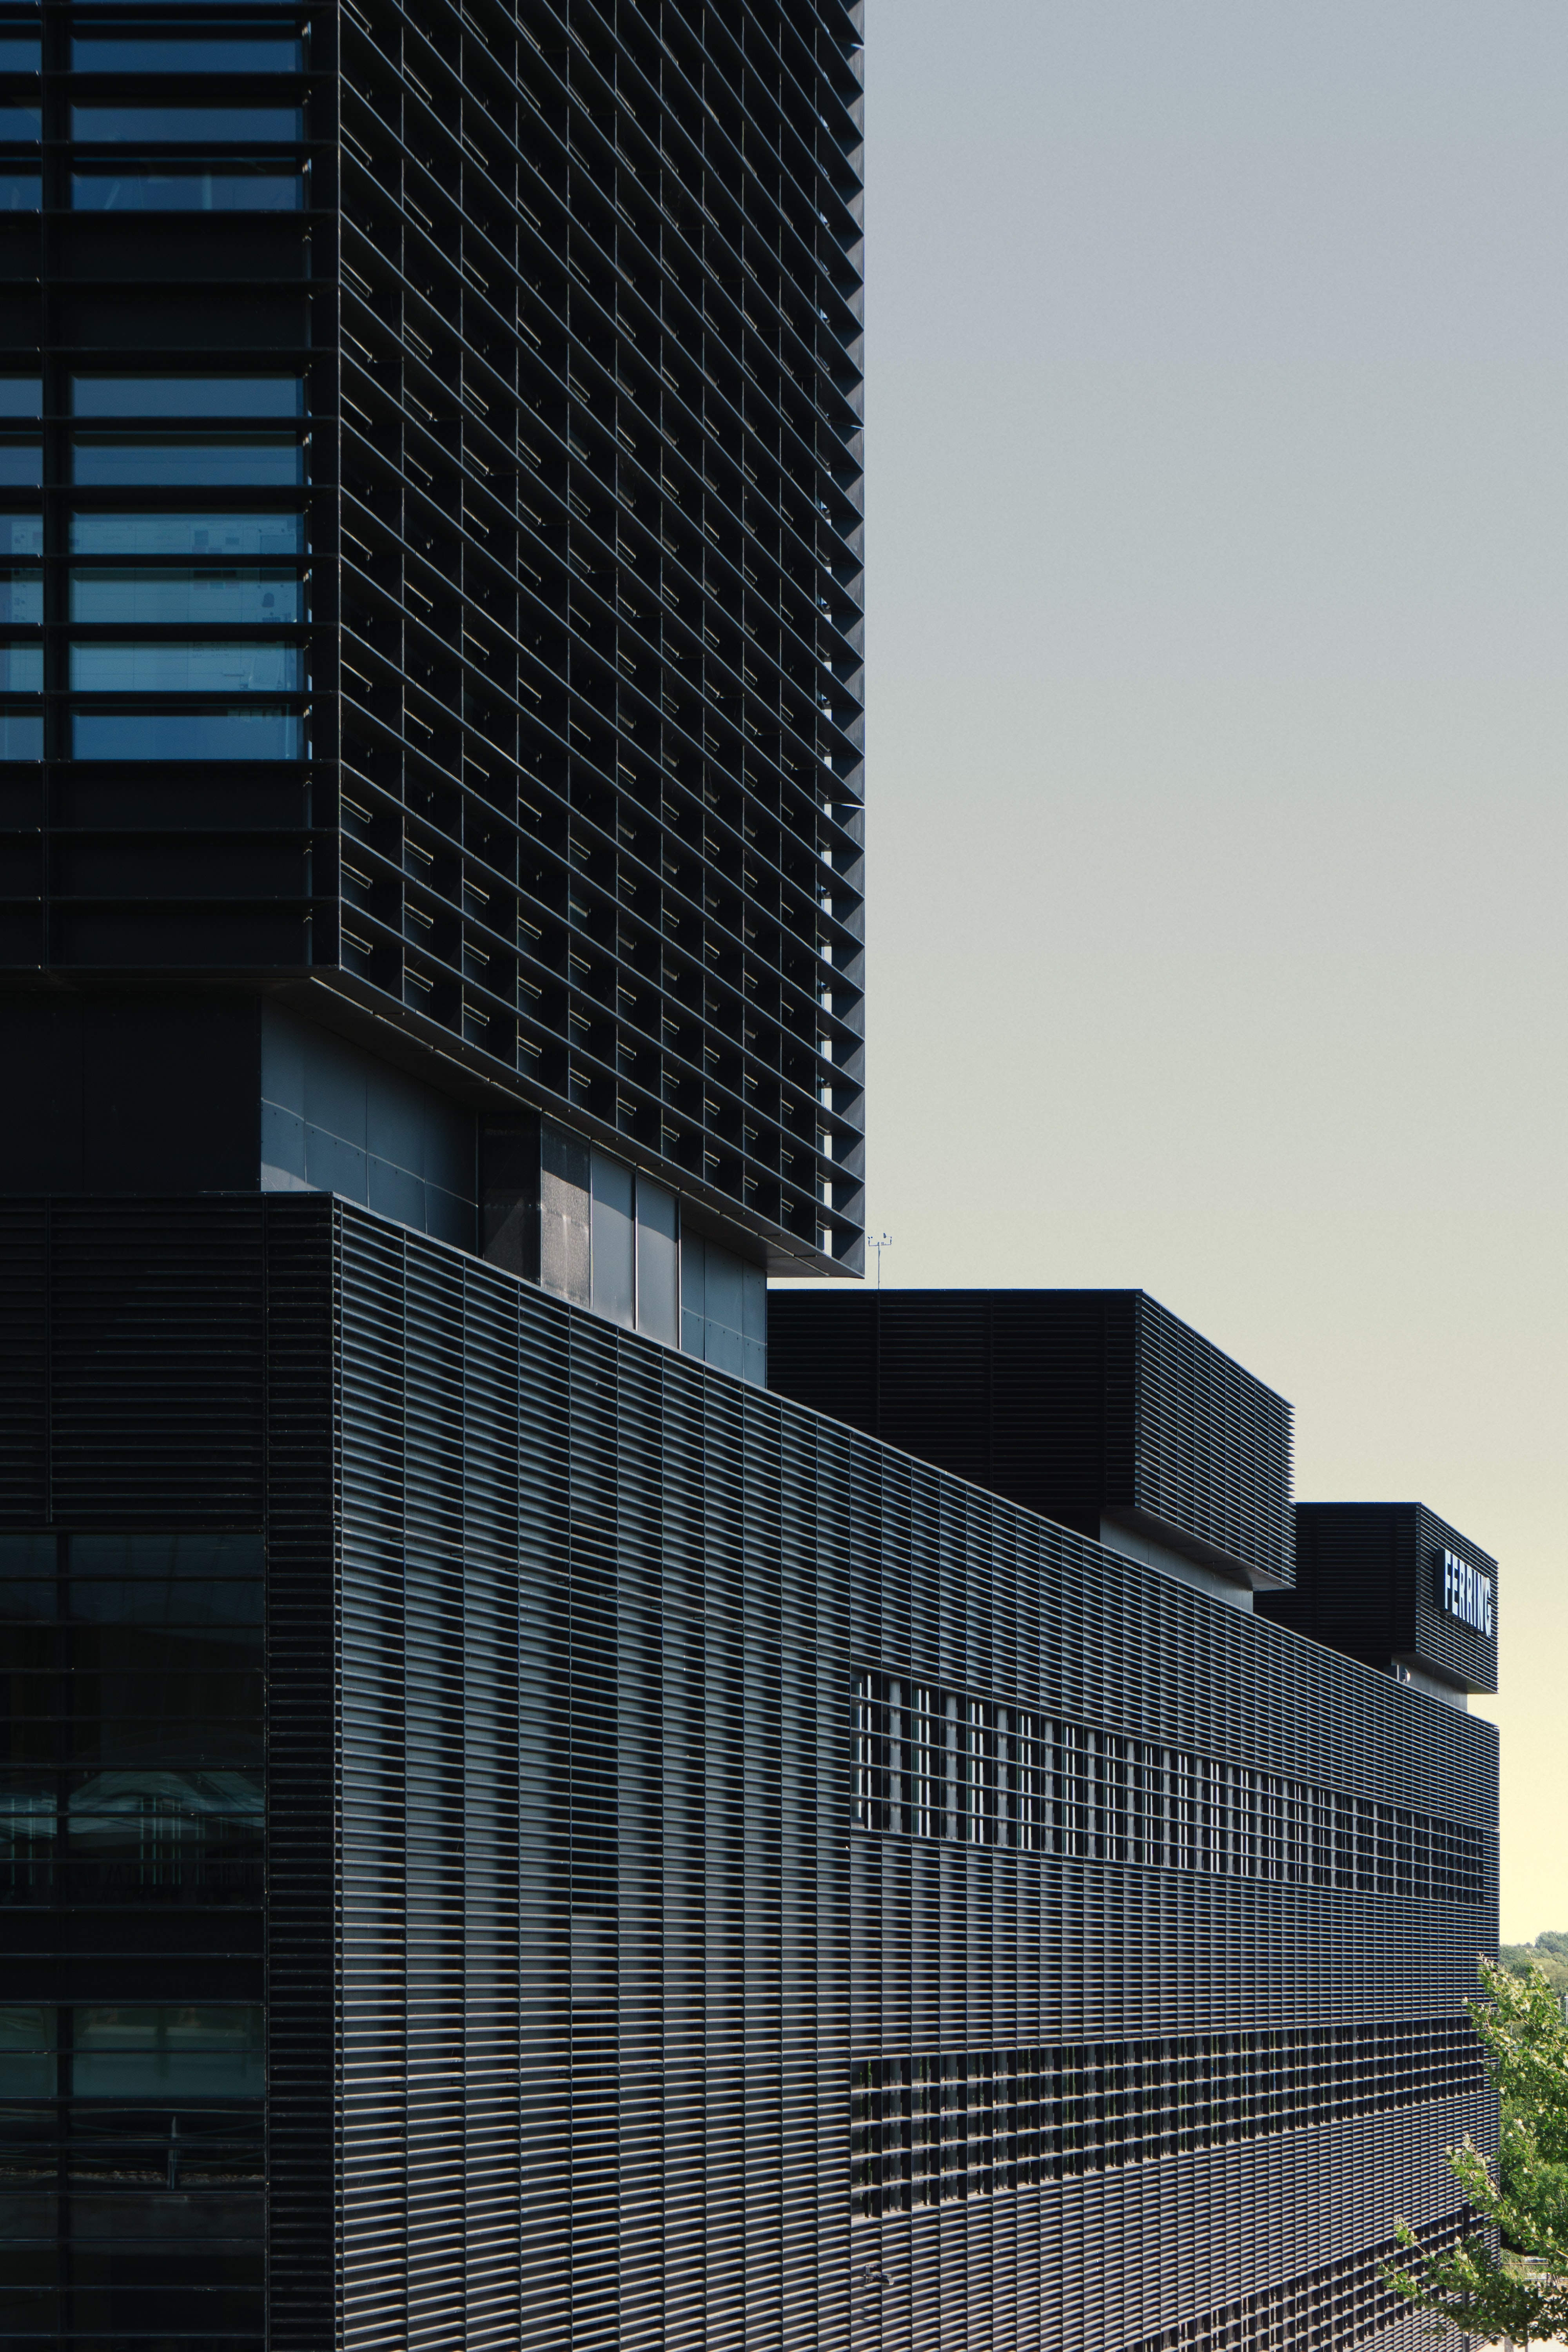 photo of black high-rise building